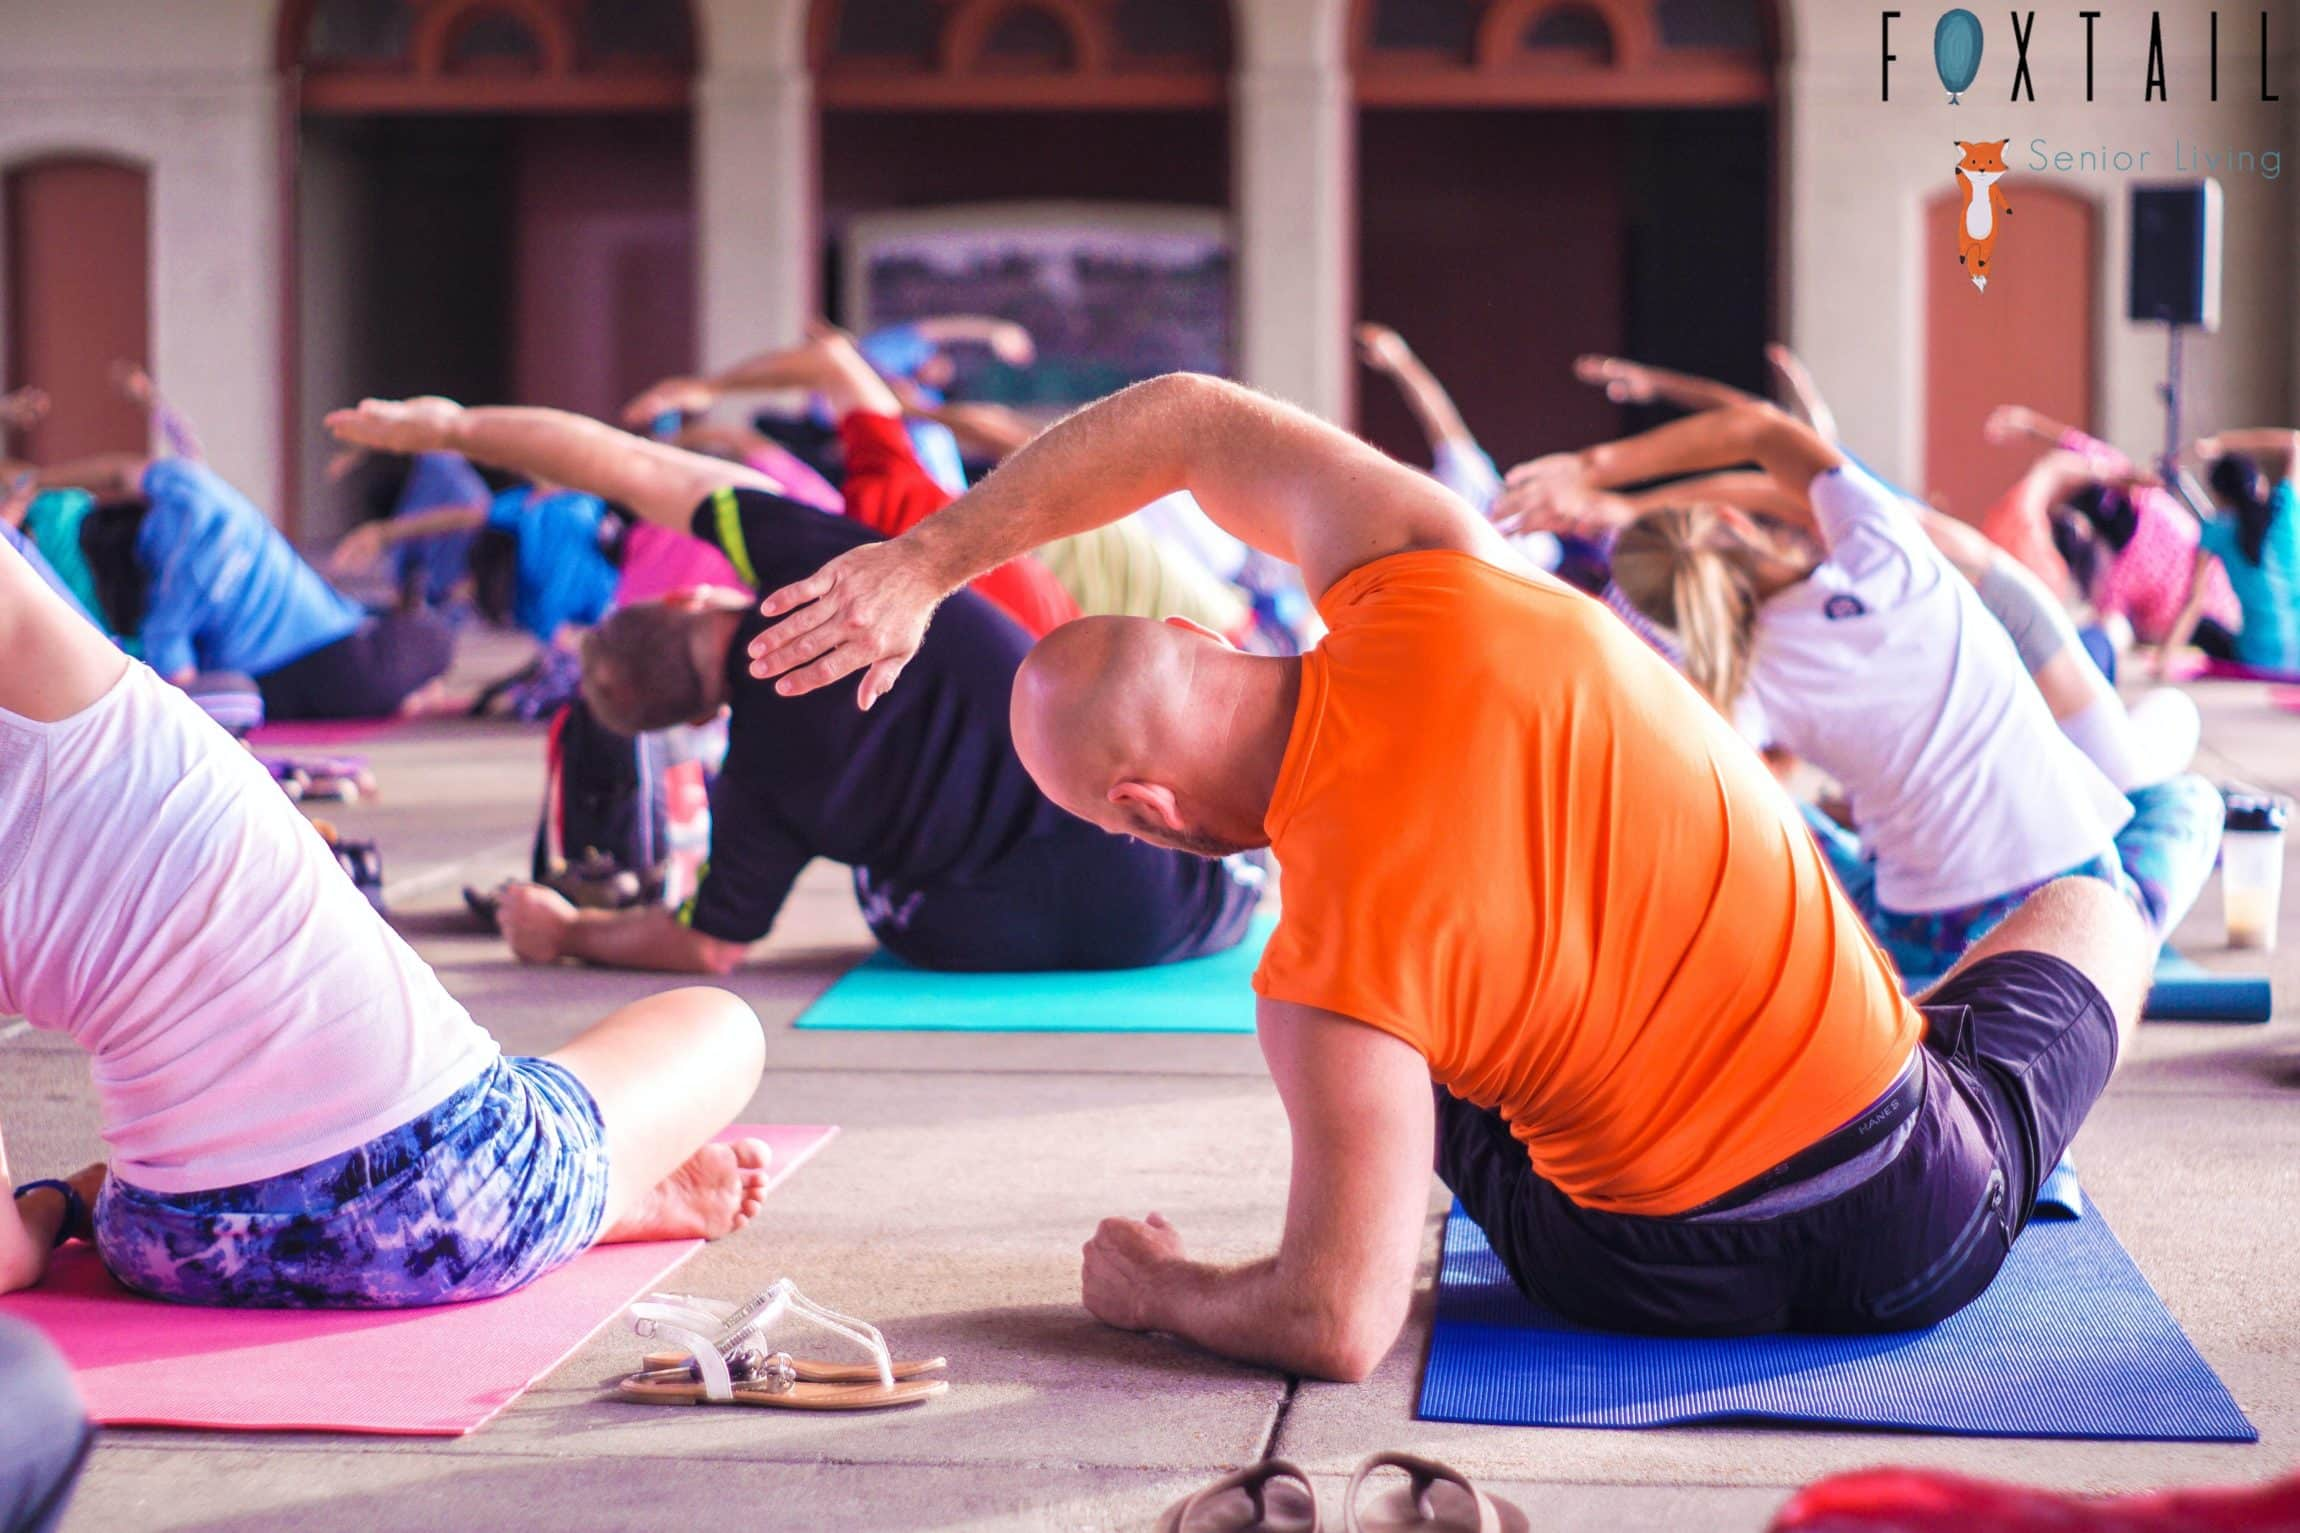 Man in an orange shirt doing a yoga pose in a yoga class.